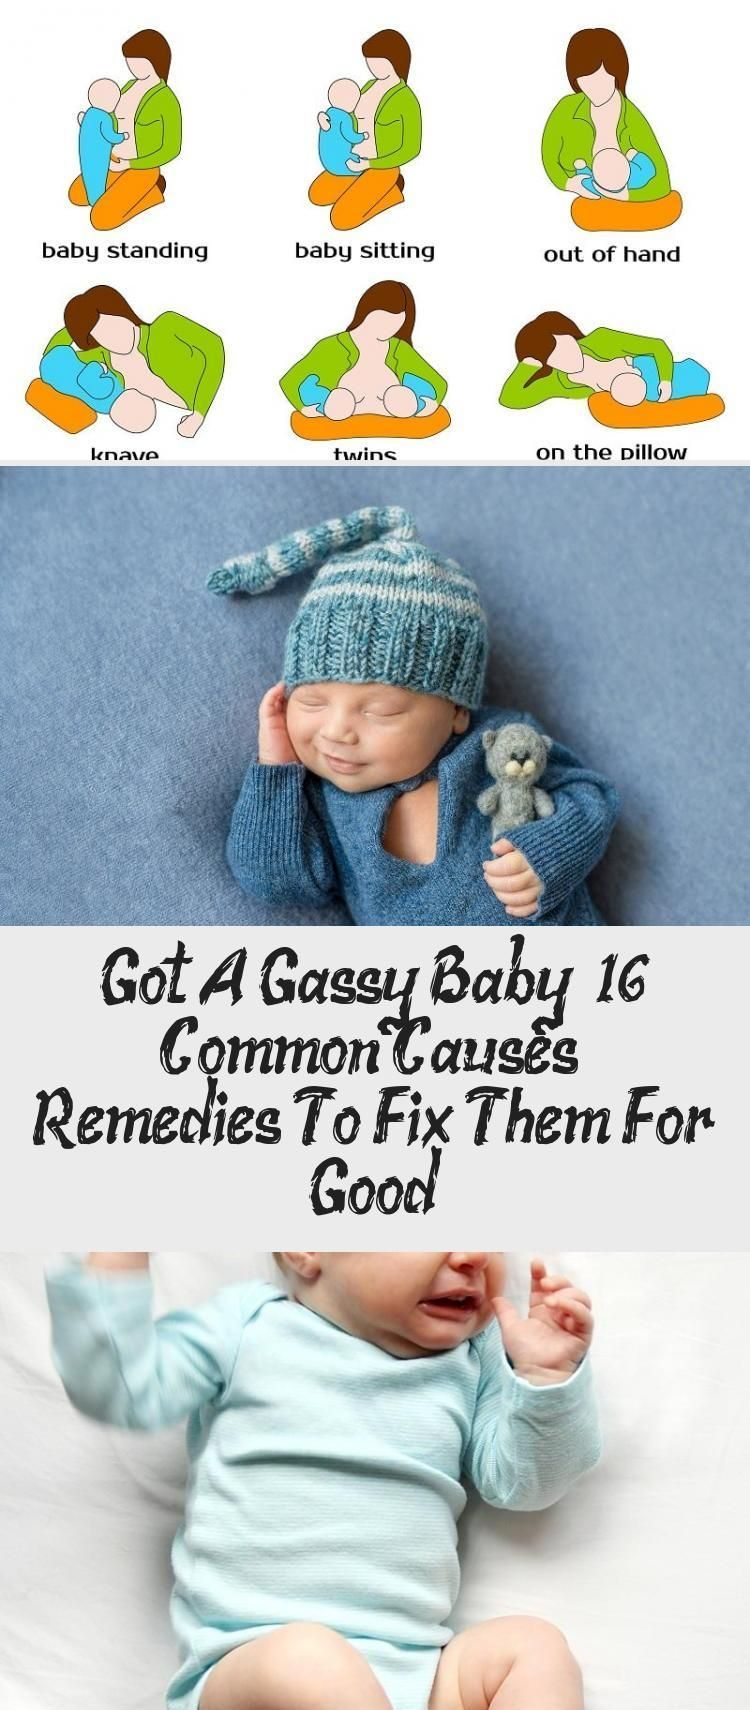 Baby Care Newborns Are Gassy It May Make Your Baby Cry Inconsolably Colic And S Baby Babymassageforgas Ca In 2020 Gassy Baby Baby Massage Baby Gas Relief